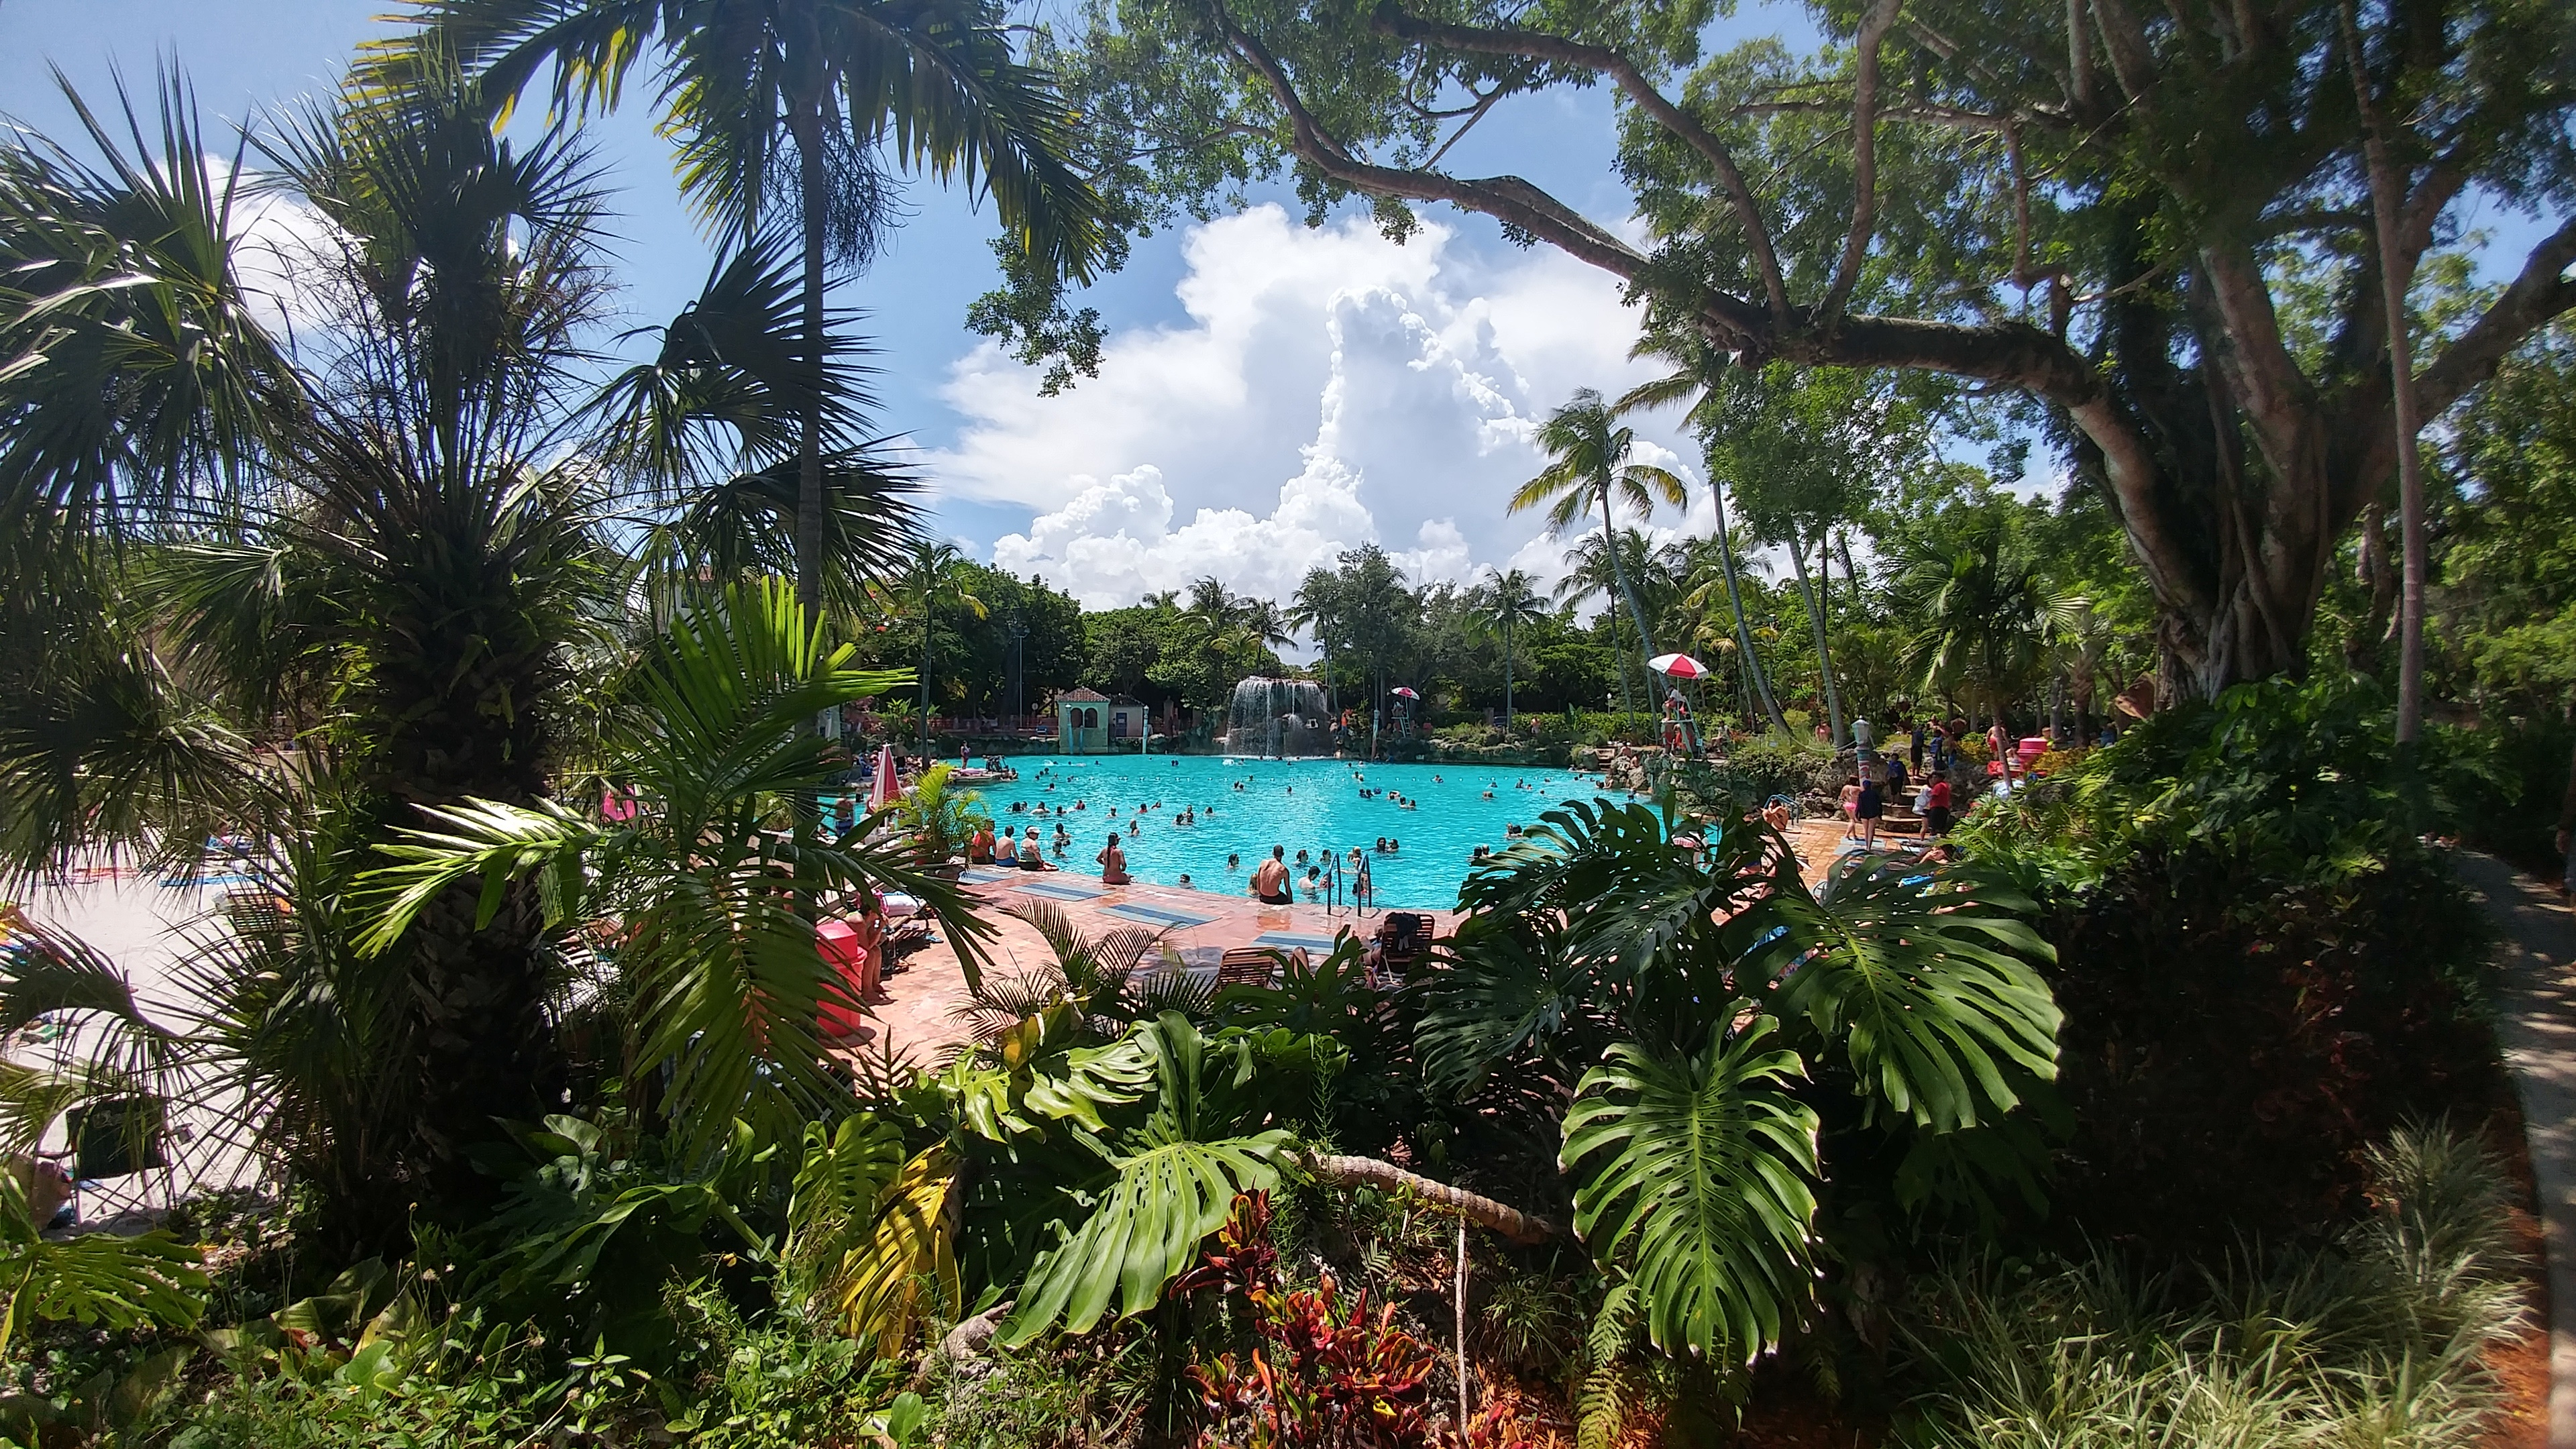 (Venetian Pool, Coral Gables, Fl. Jun 25th, 2016